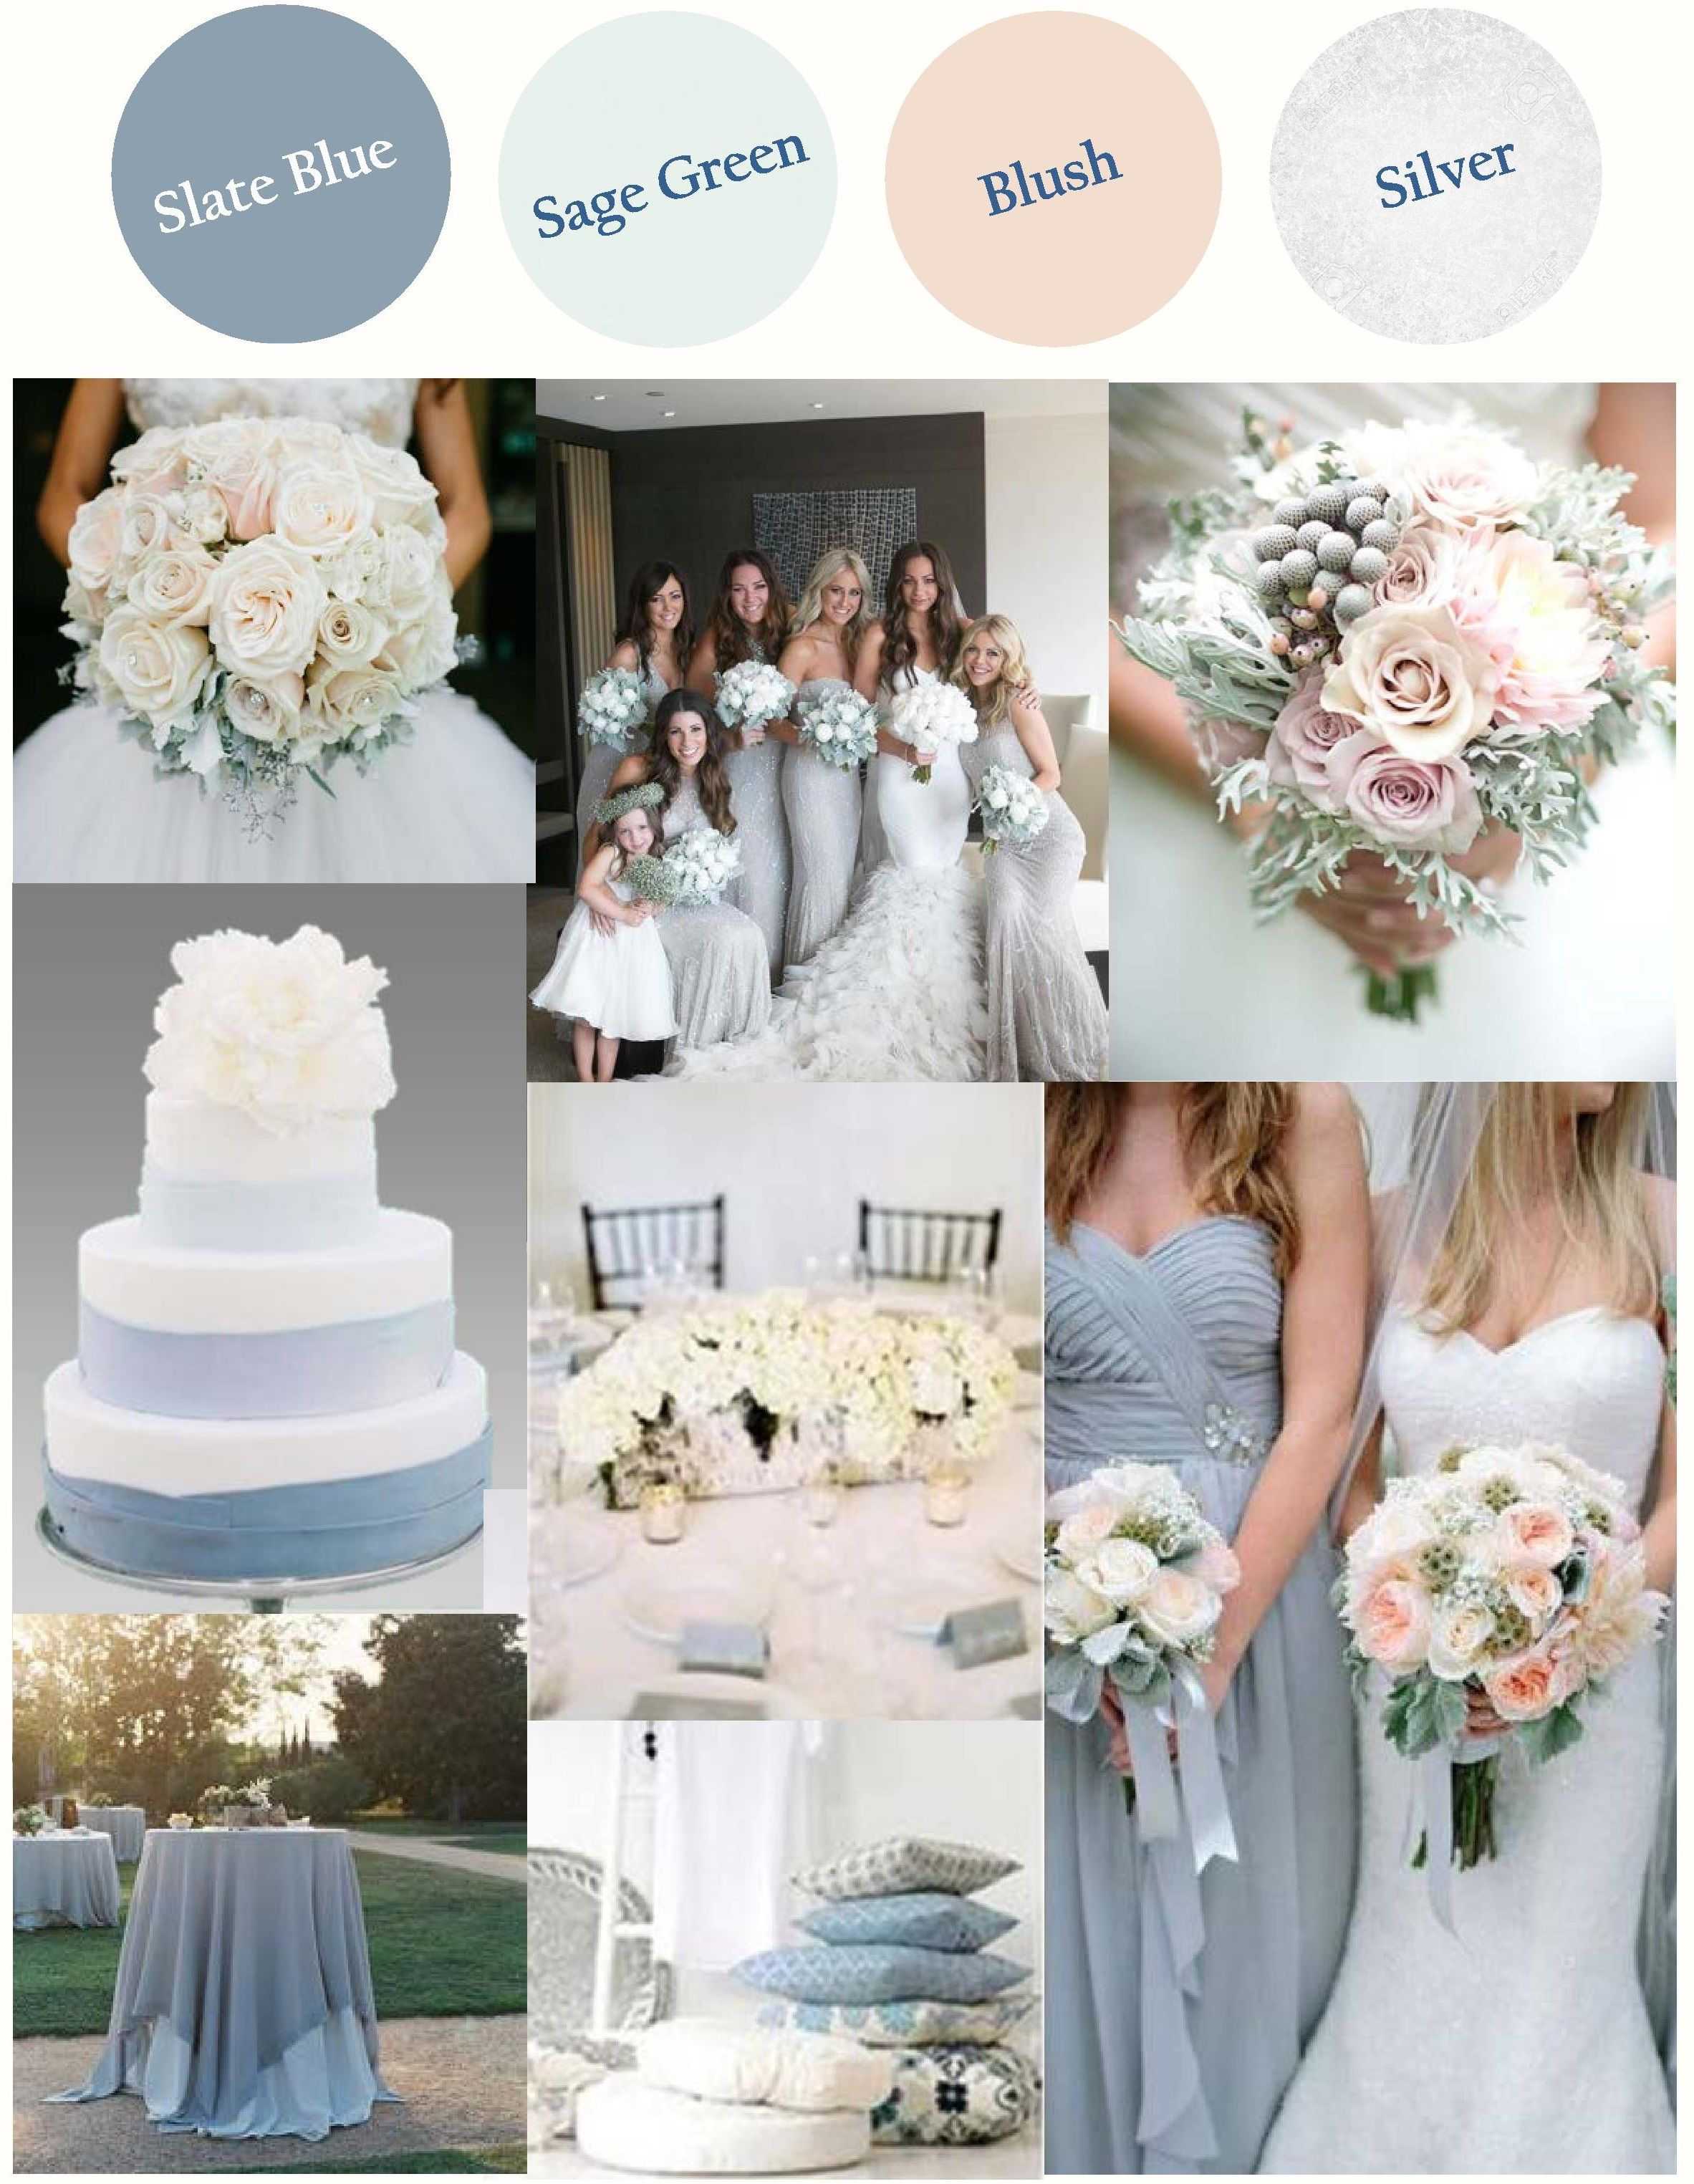 Slate Blue (or Dusty Blue) with Light Sage Green Blush and Silver ...